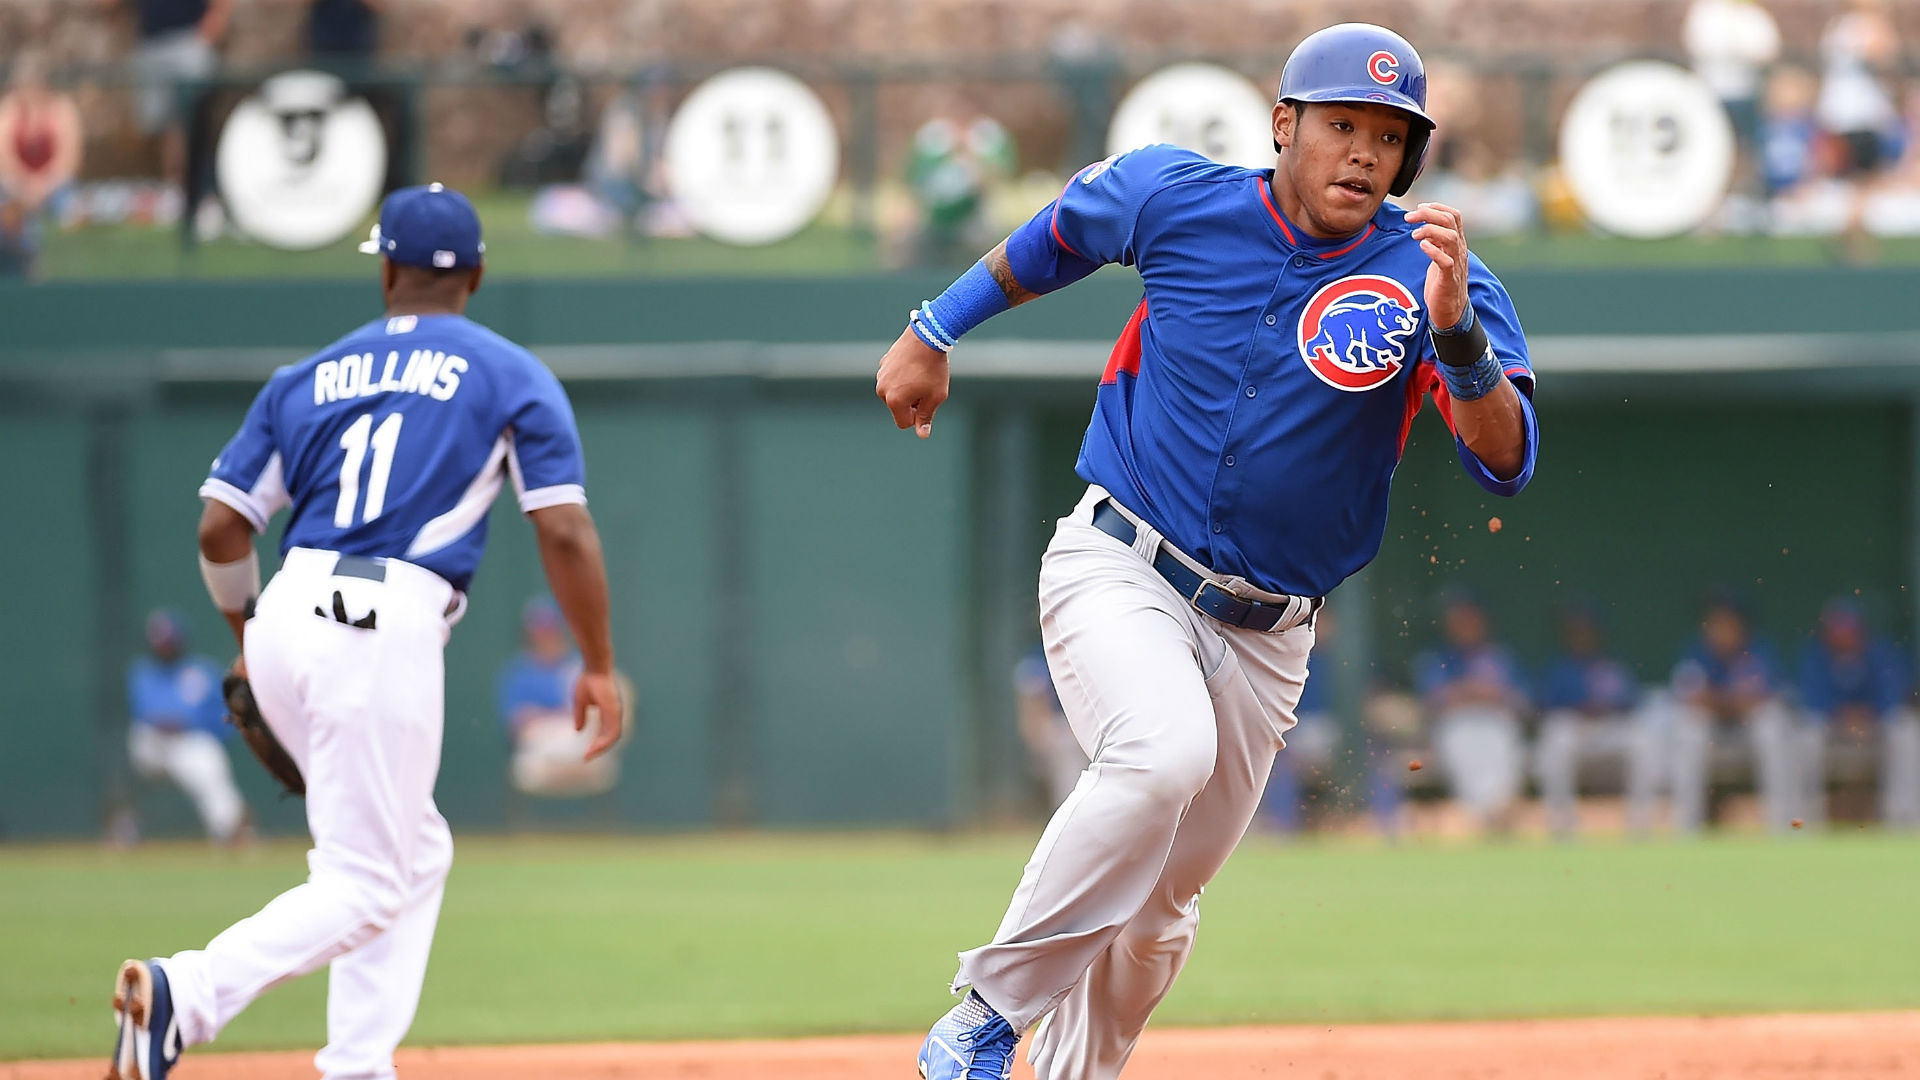 Cubs call up highly touted infielder Addison Russell